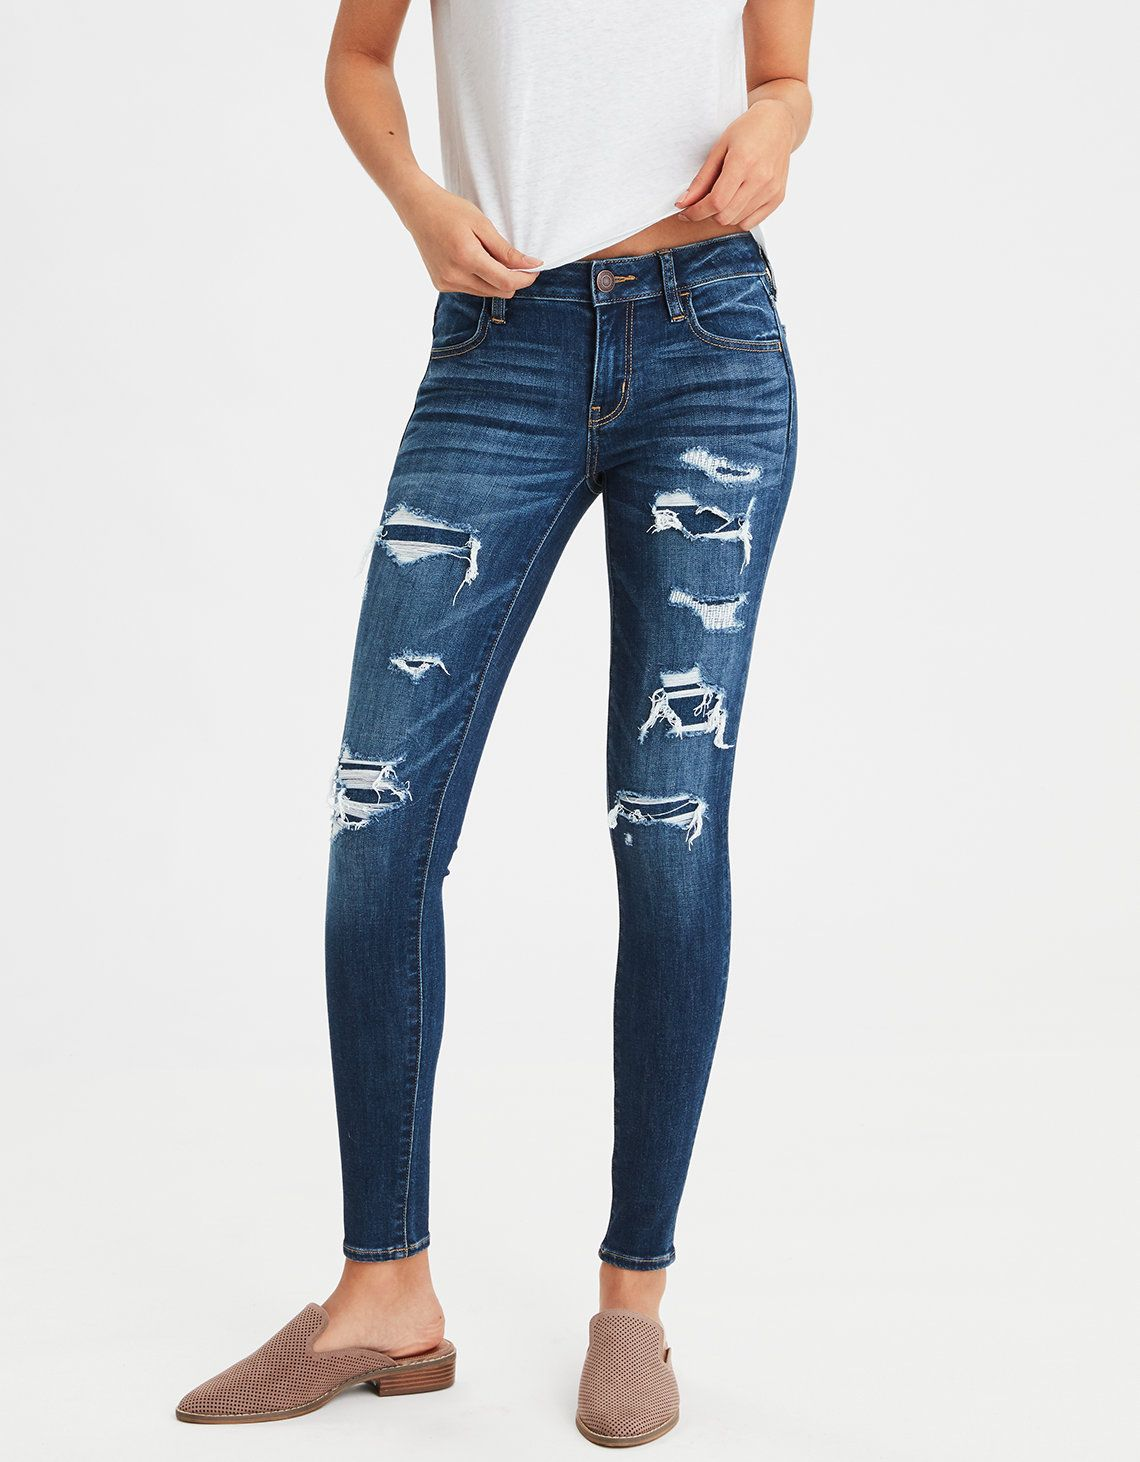 7fb891f834410 Not these but I would like to get some new Jean's and jeggings at some point